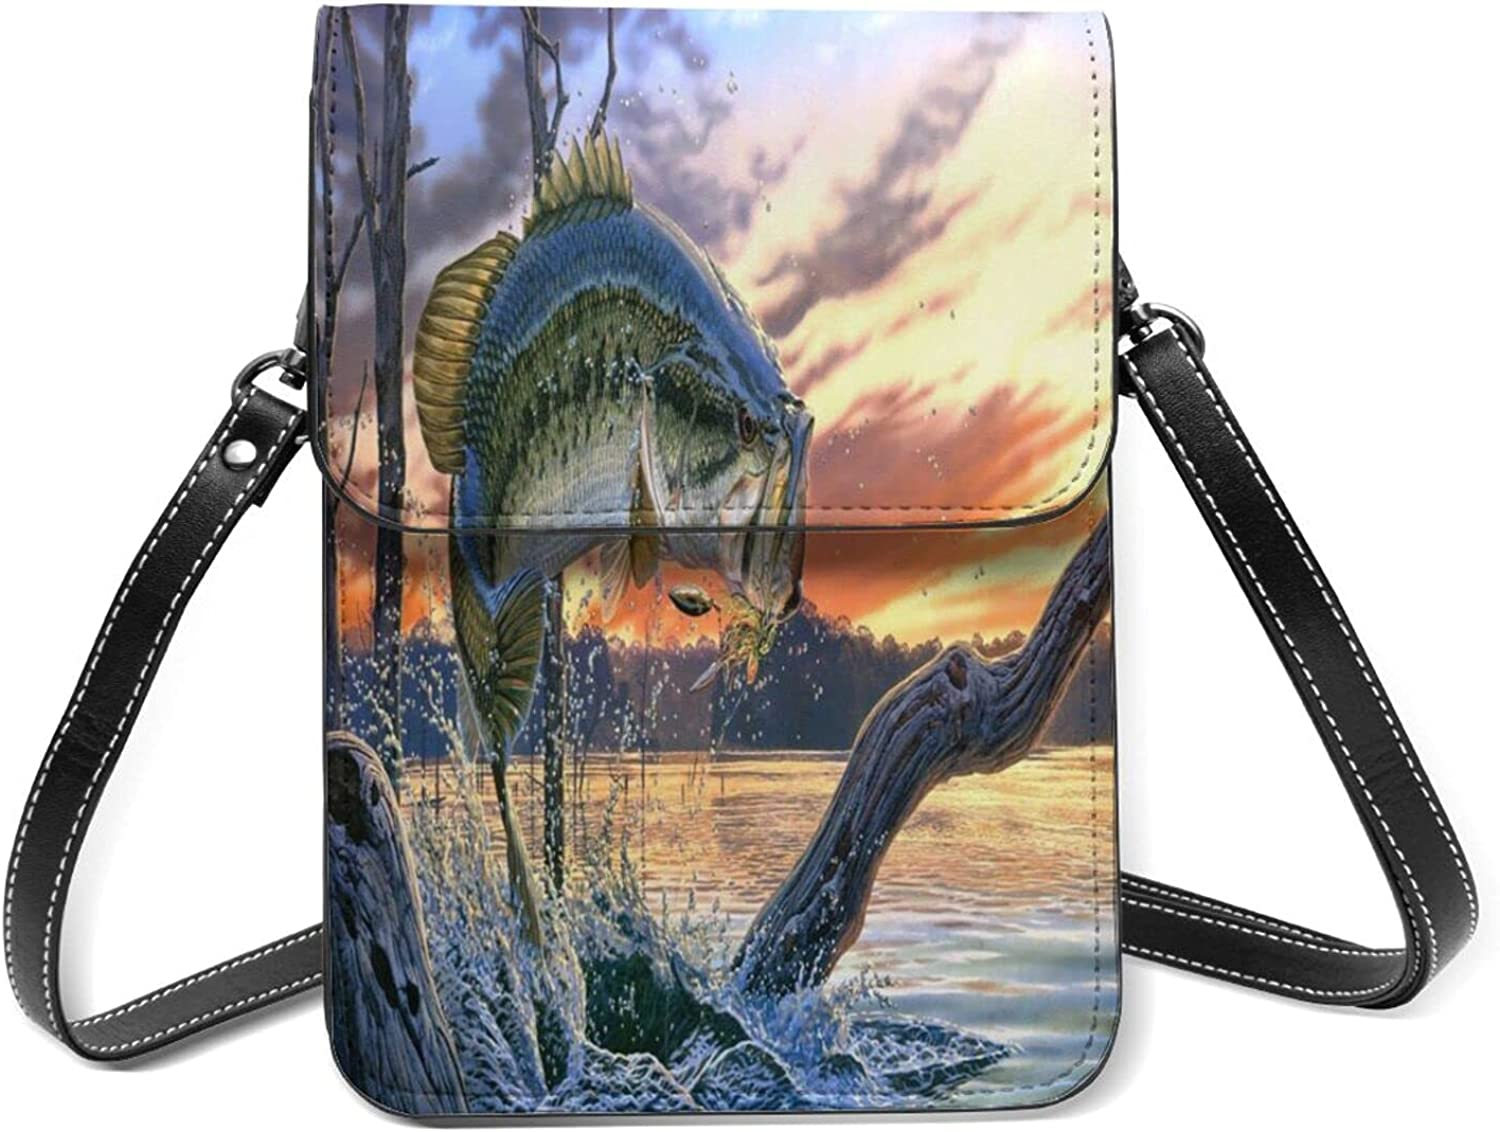 Fishing Small Cell Phone Purse Many popular brands Shoulder Lightweight Flip St With SALENEW very popular